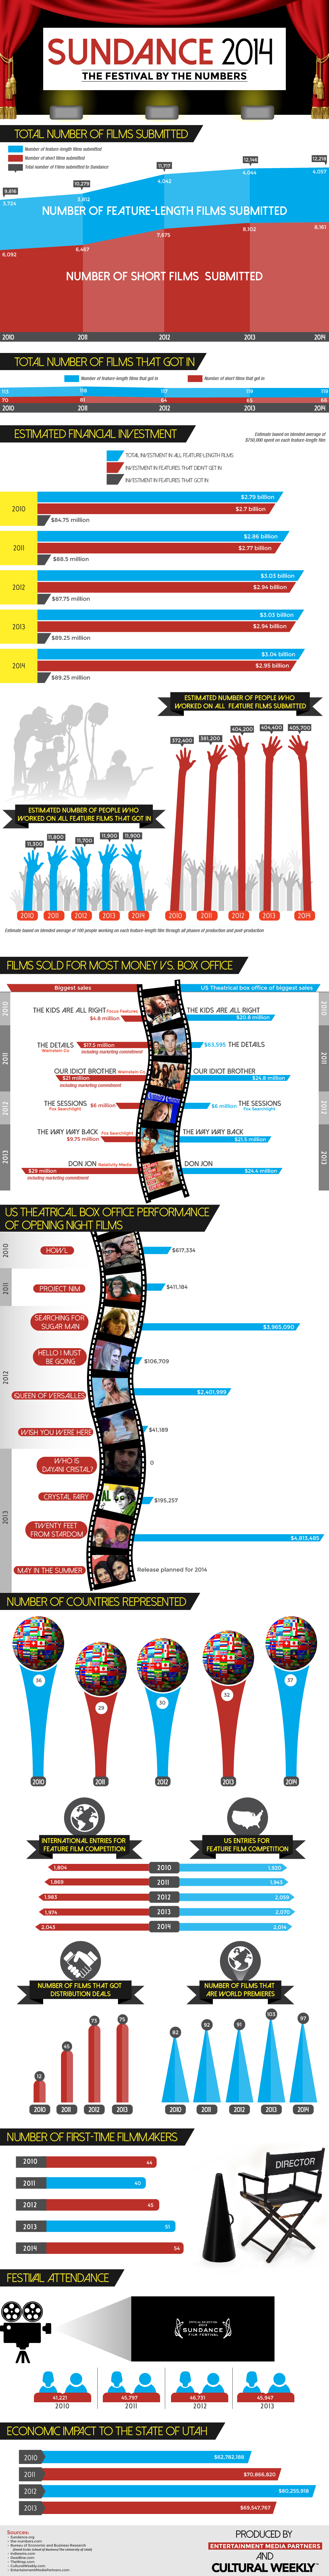 Sundance 2014 Infographic: Film Festival by the Numbers